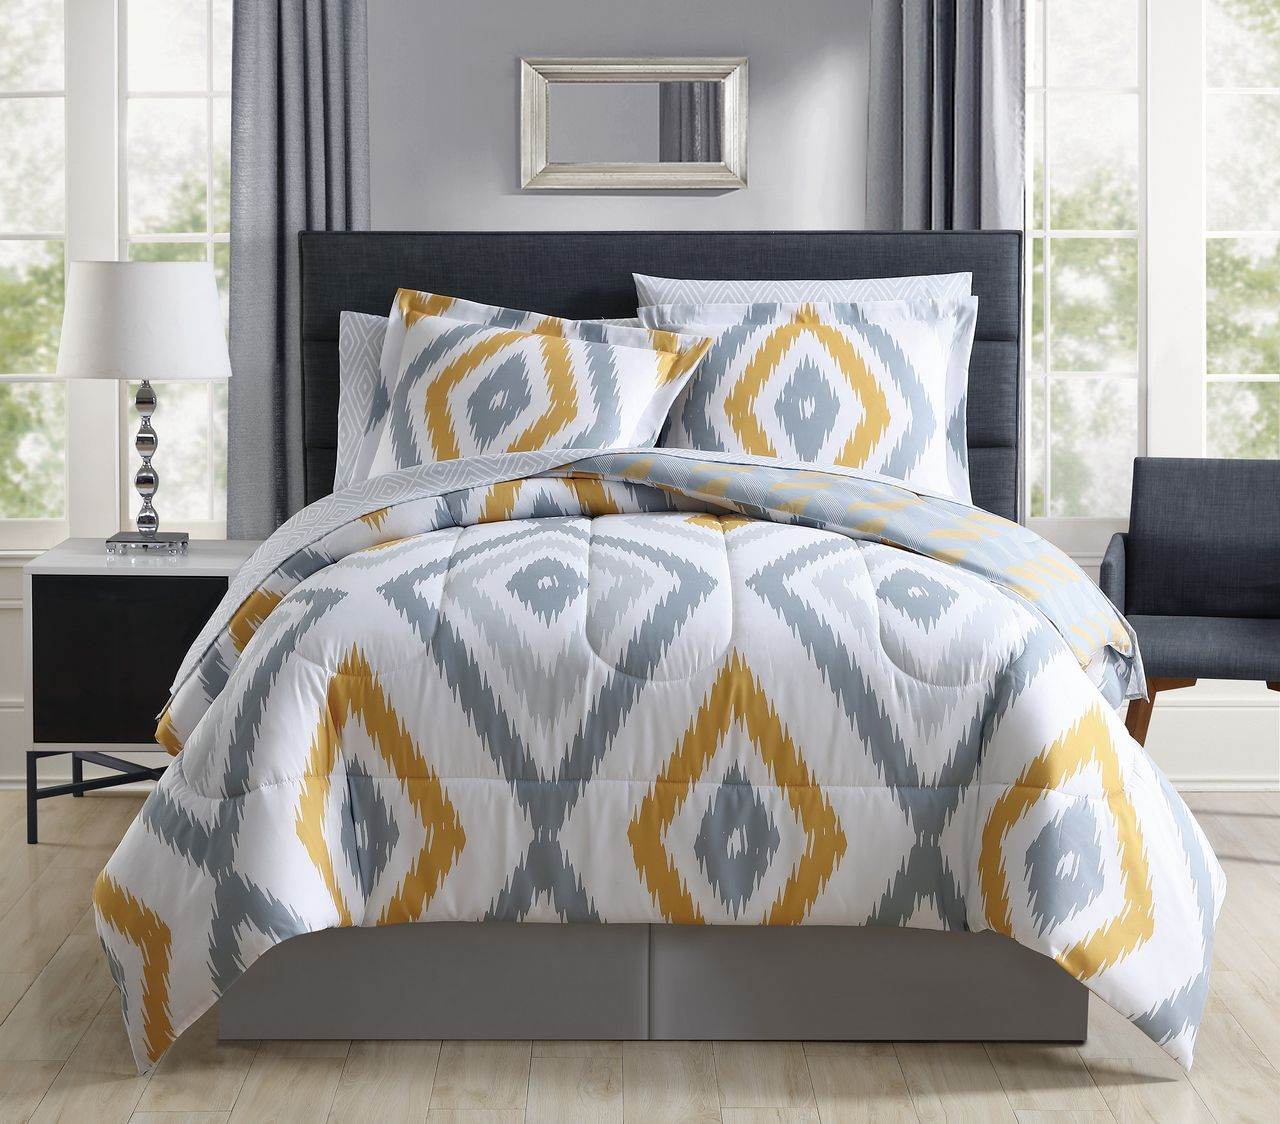 8 Piece Hamshire Yellow Gray forter Set with Sheets